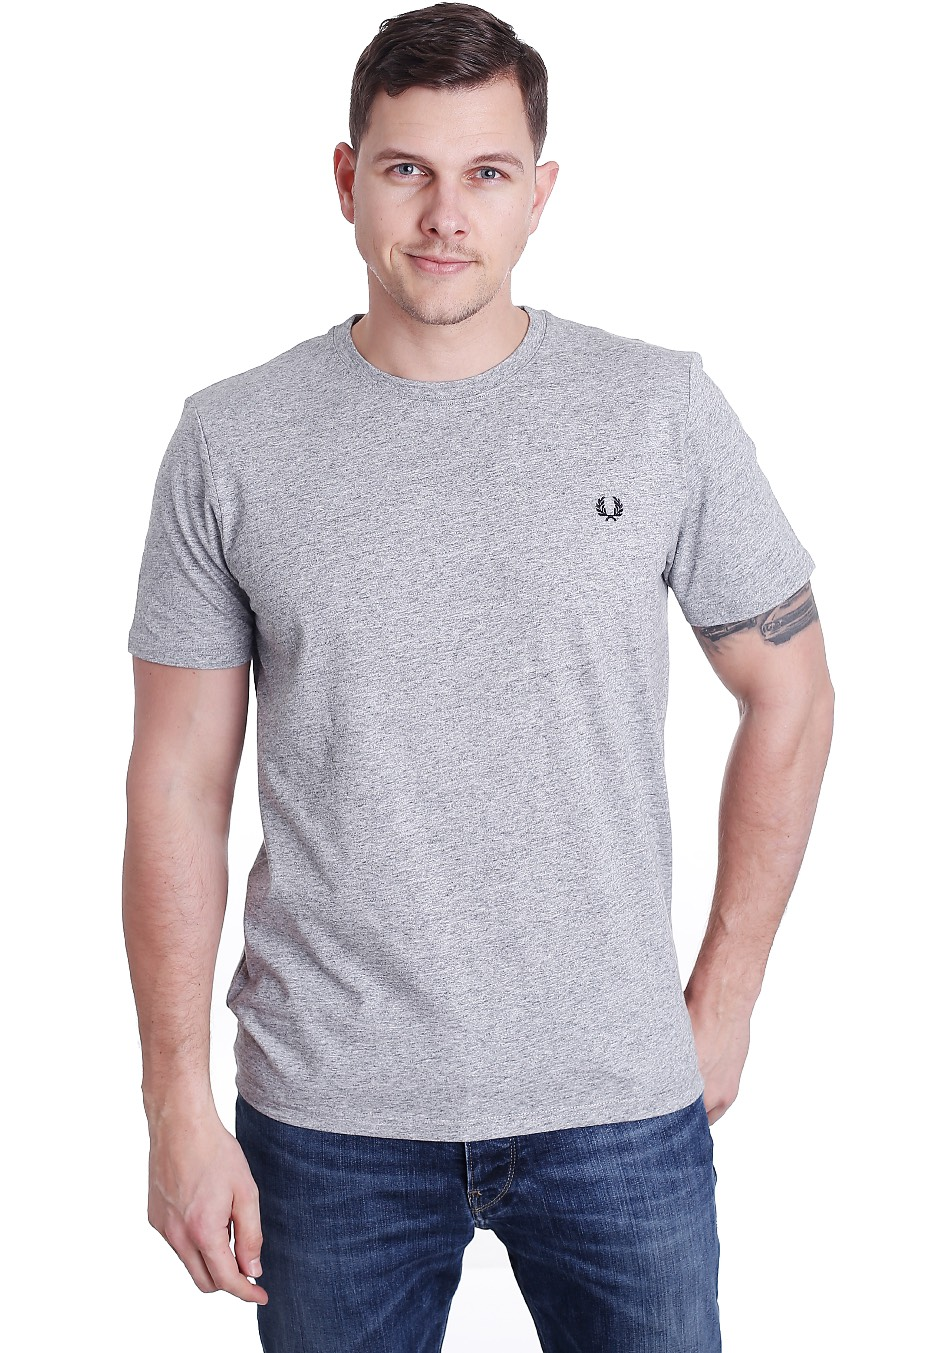 617442ad6 Fred Perry - Crew Neck Vintage Steel Marl - T-Shirt - Streetwear Shop -  Impericon.com Worldwide